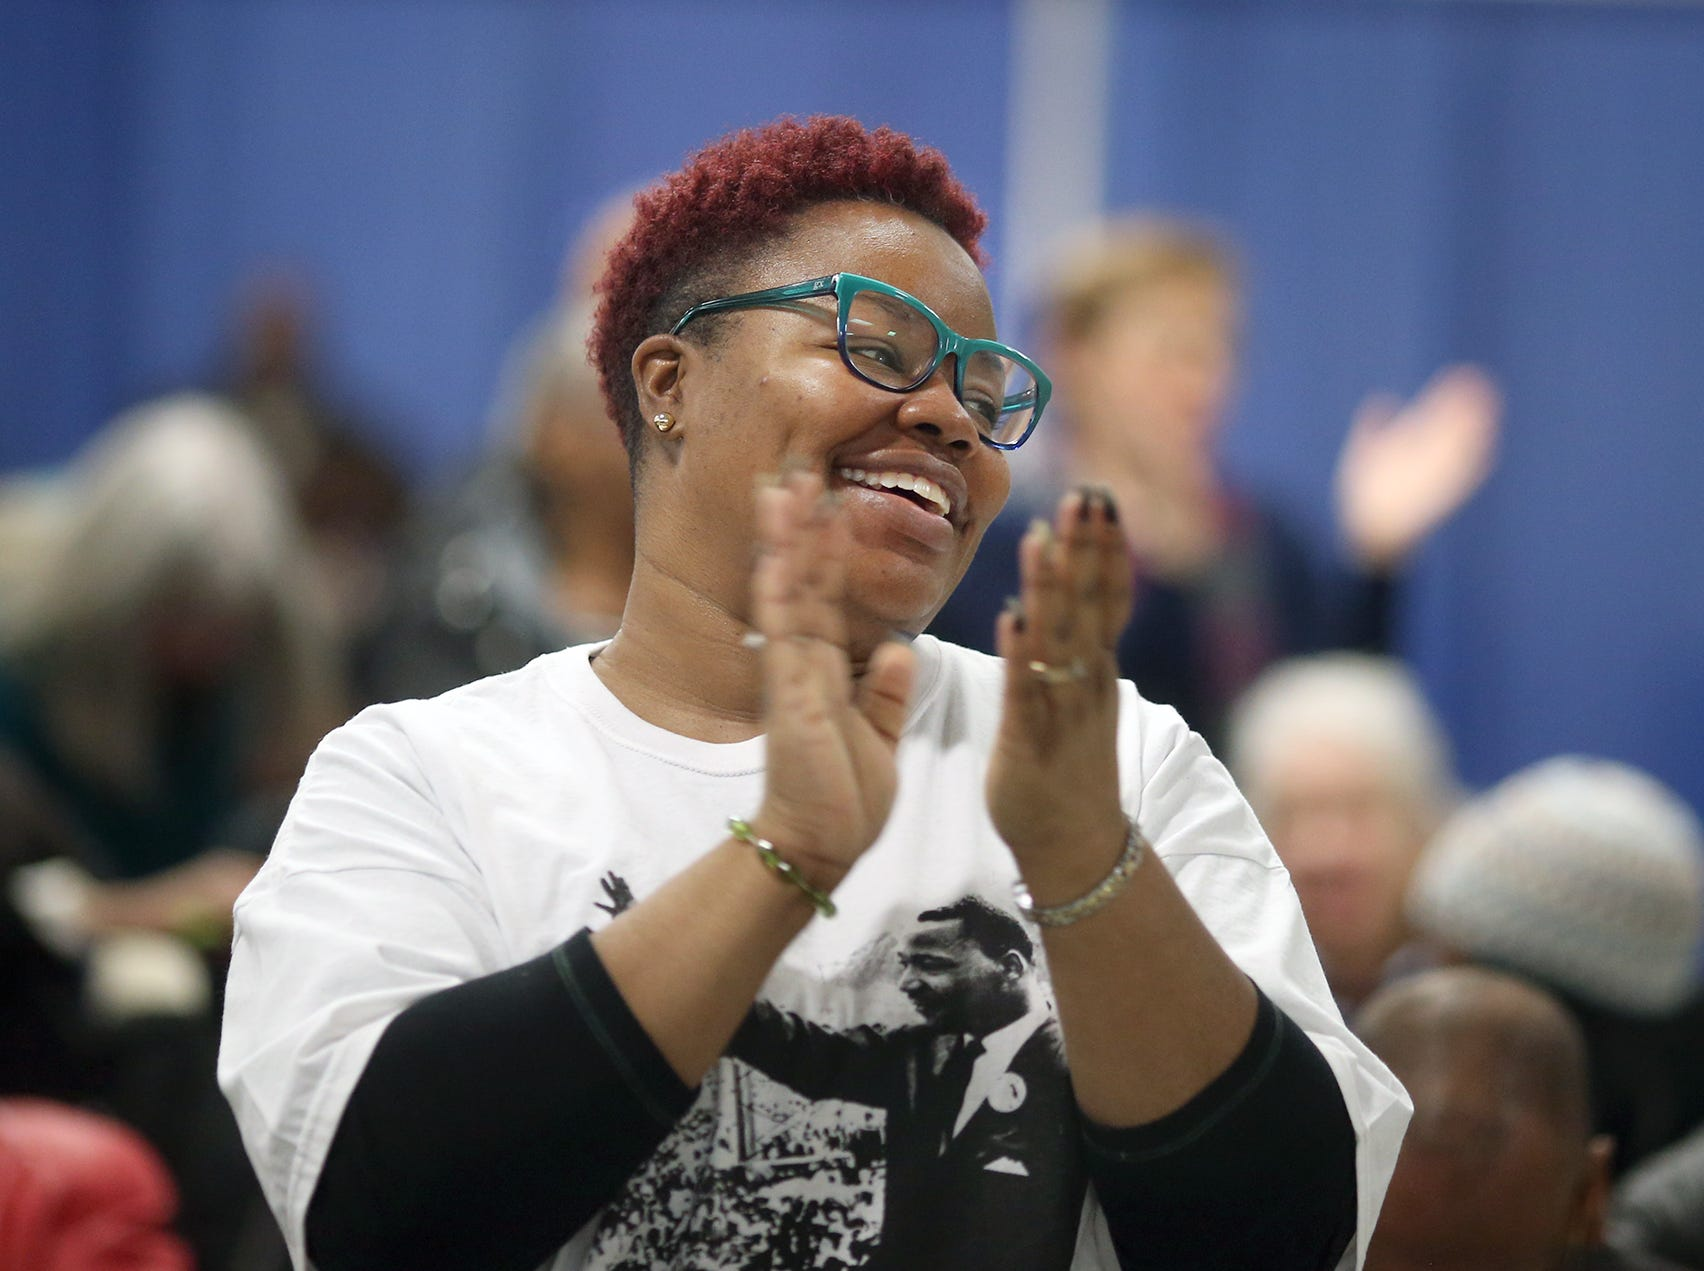 Candyce Chattman of Bremerton applauds the MLK Community Choir at the 25th annual Reverend Dr. Martin Luther King, Jr. celebration was held at PresidentsÕ Hall at the Kitsap County Fairgrounds on Monday, January, 21 , 2019.